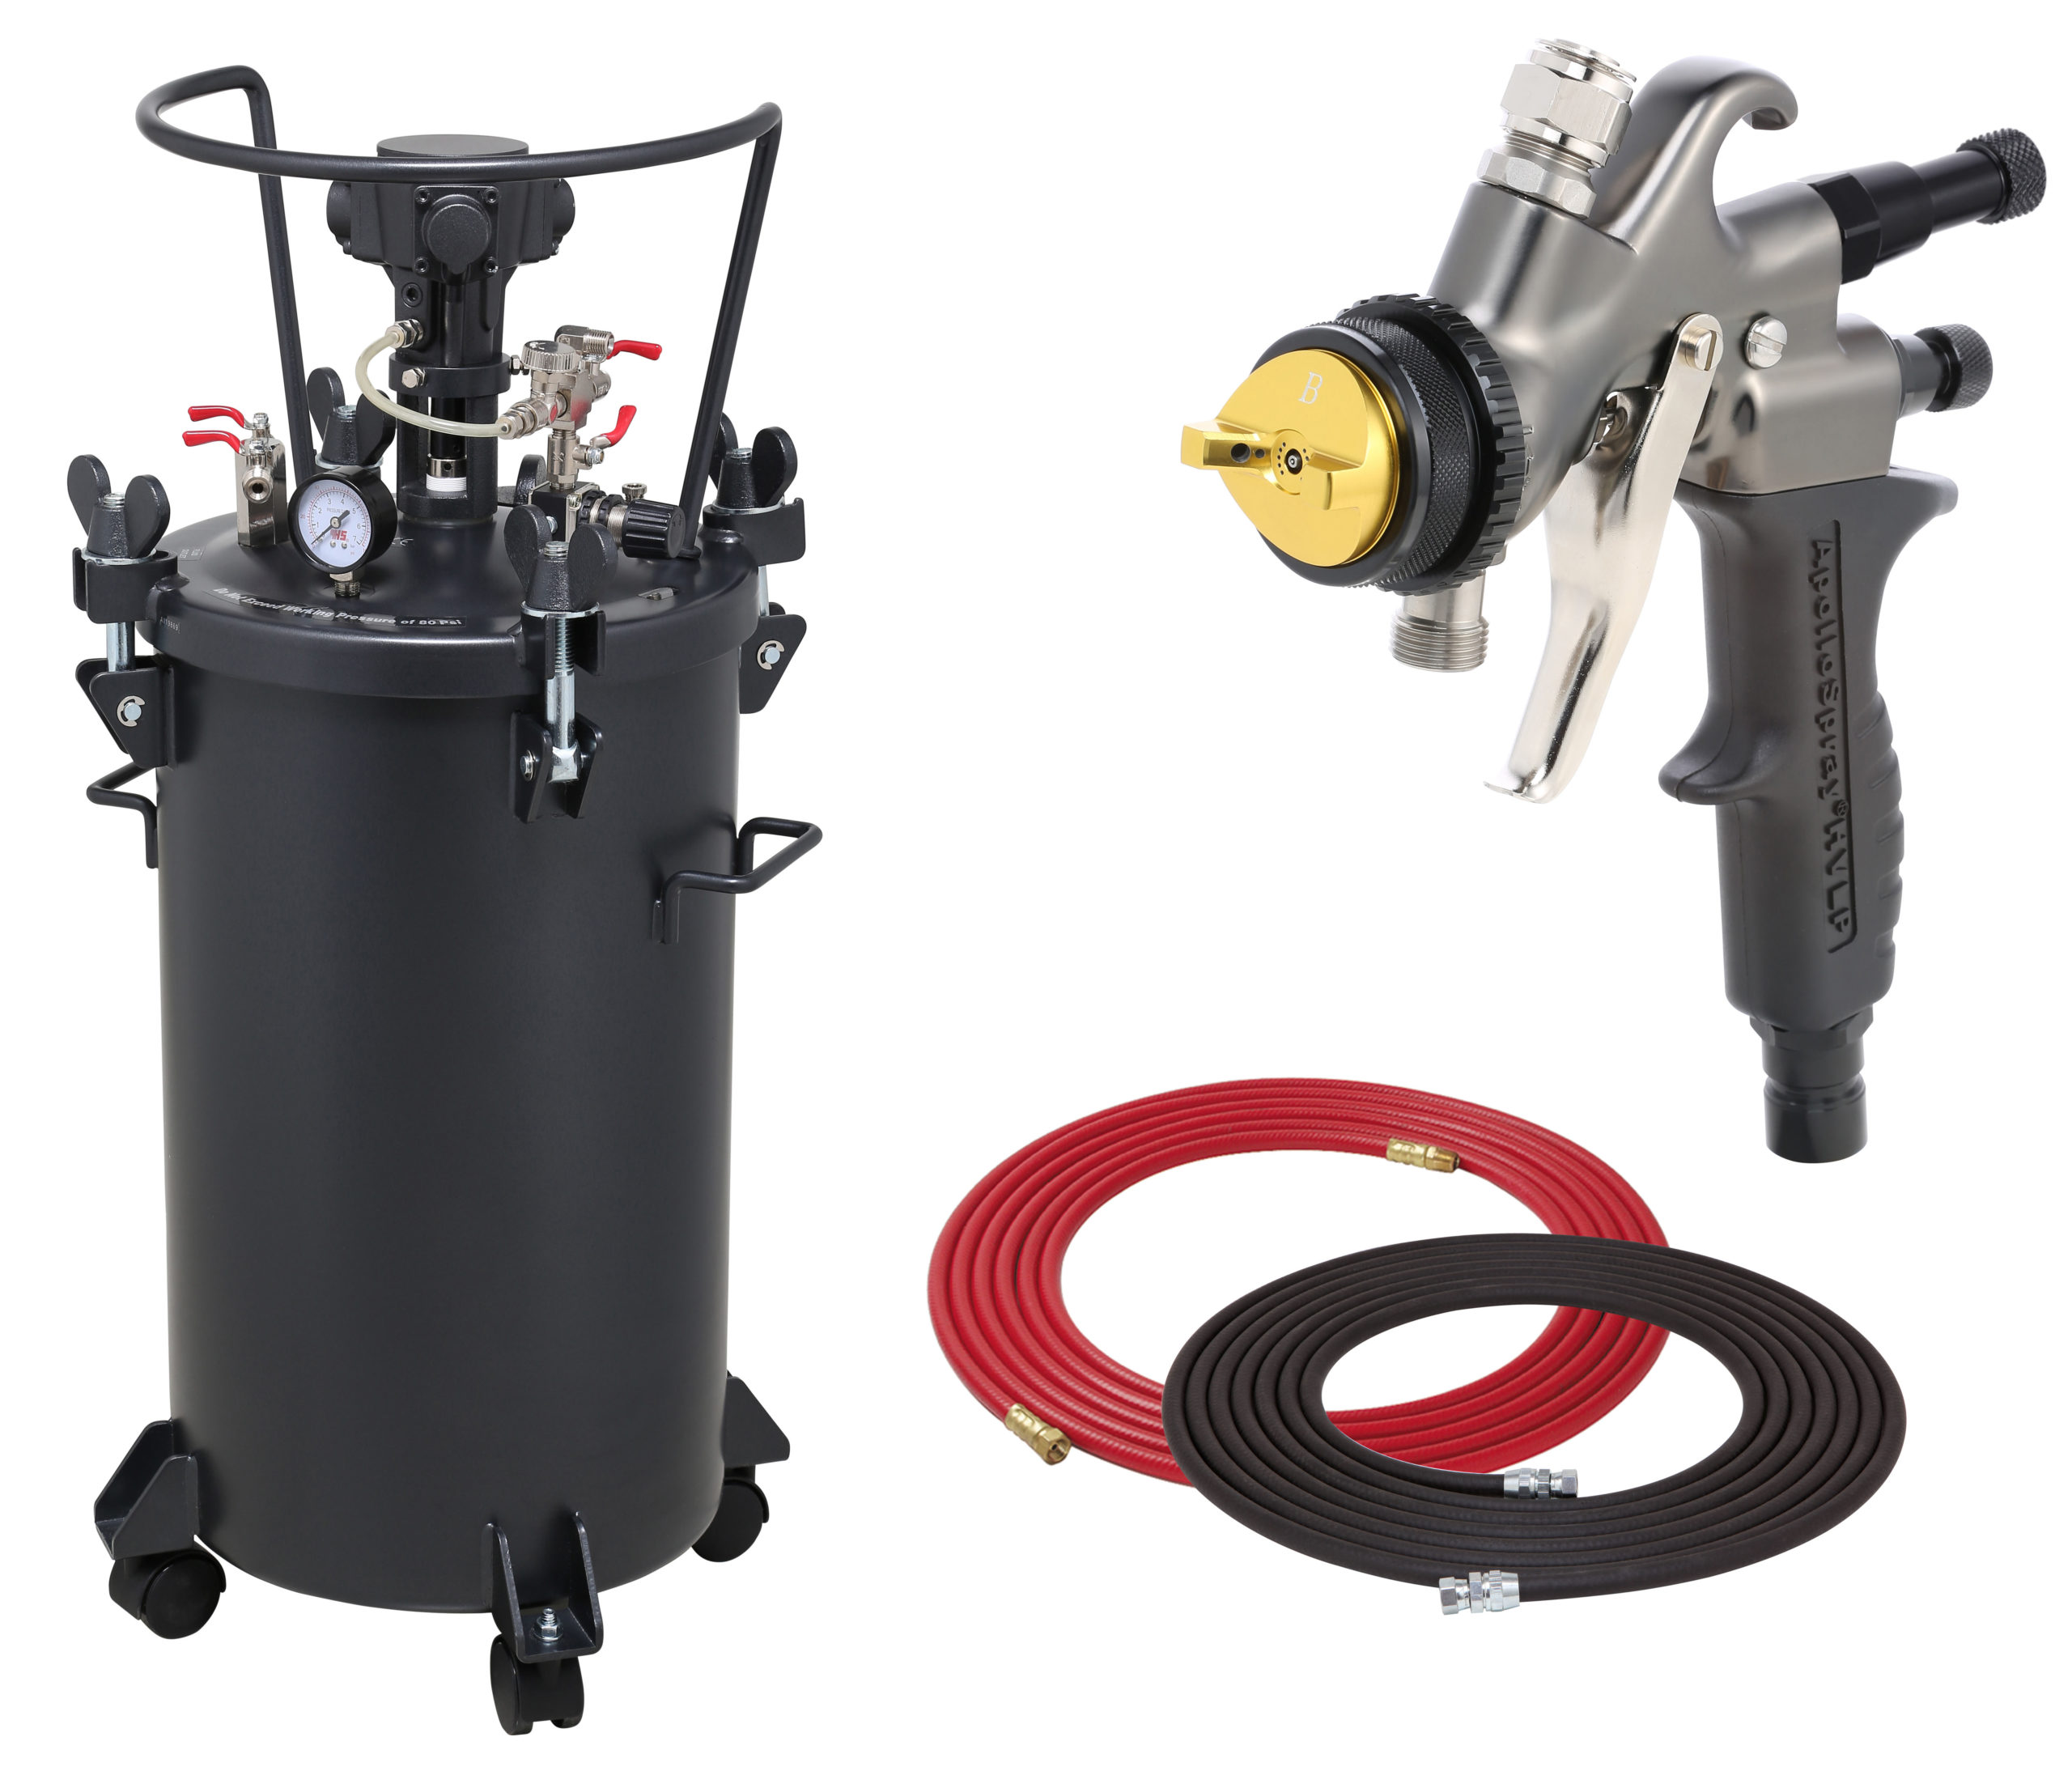 10 Gallon Combo Package with the 7700C Spray Gun